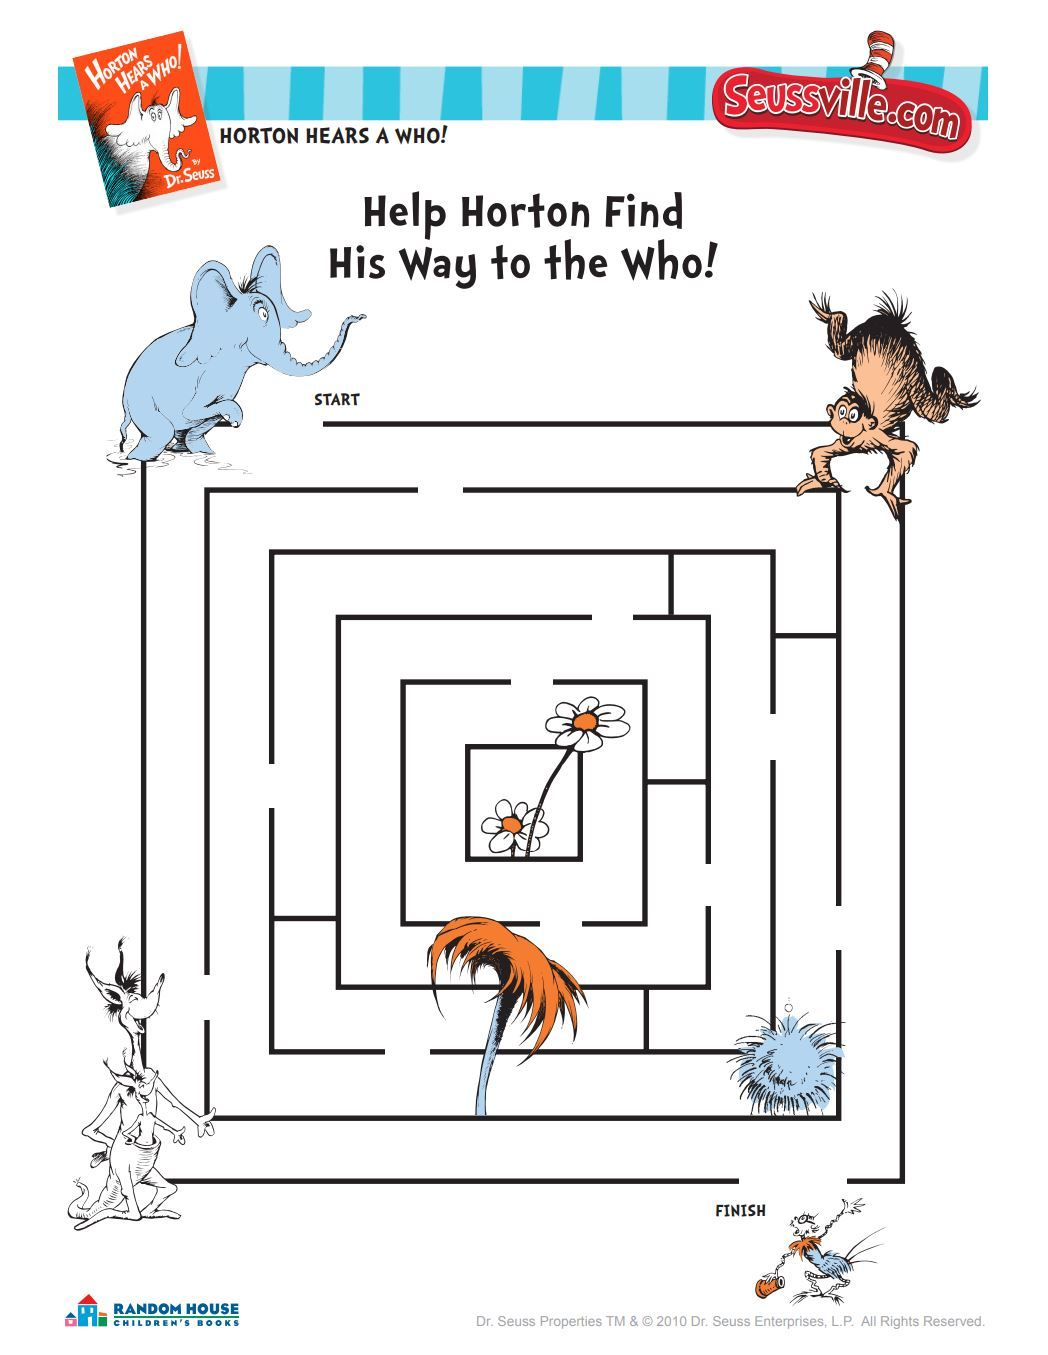 Dr Seuss Printables And Activities Brightly Dr Seuss Preschool Dr Seuss Activities Dr Seuss Day